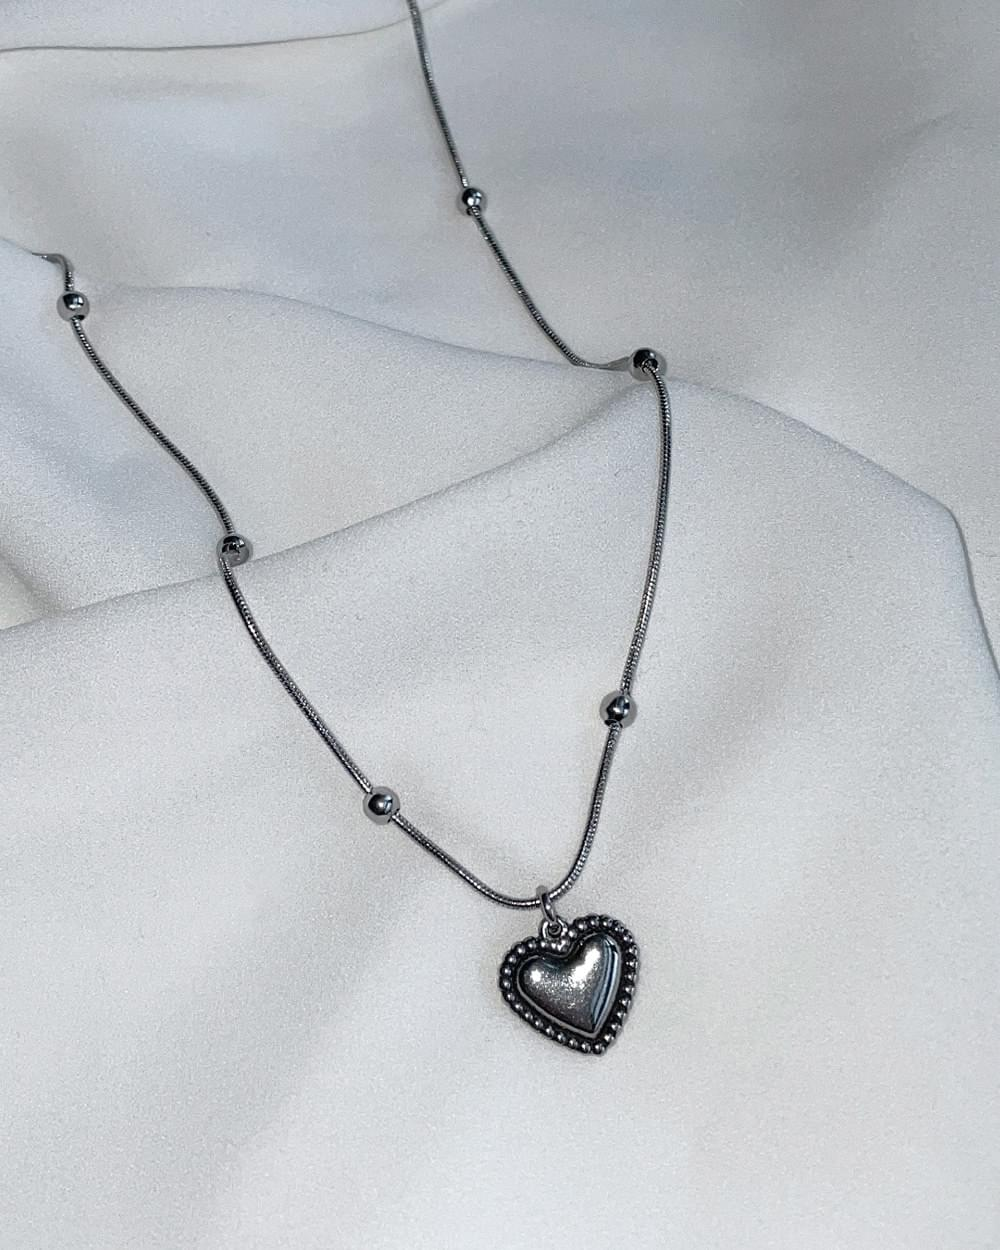 Hone Vintage Silver Heart Ball Chain Necklace